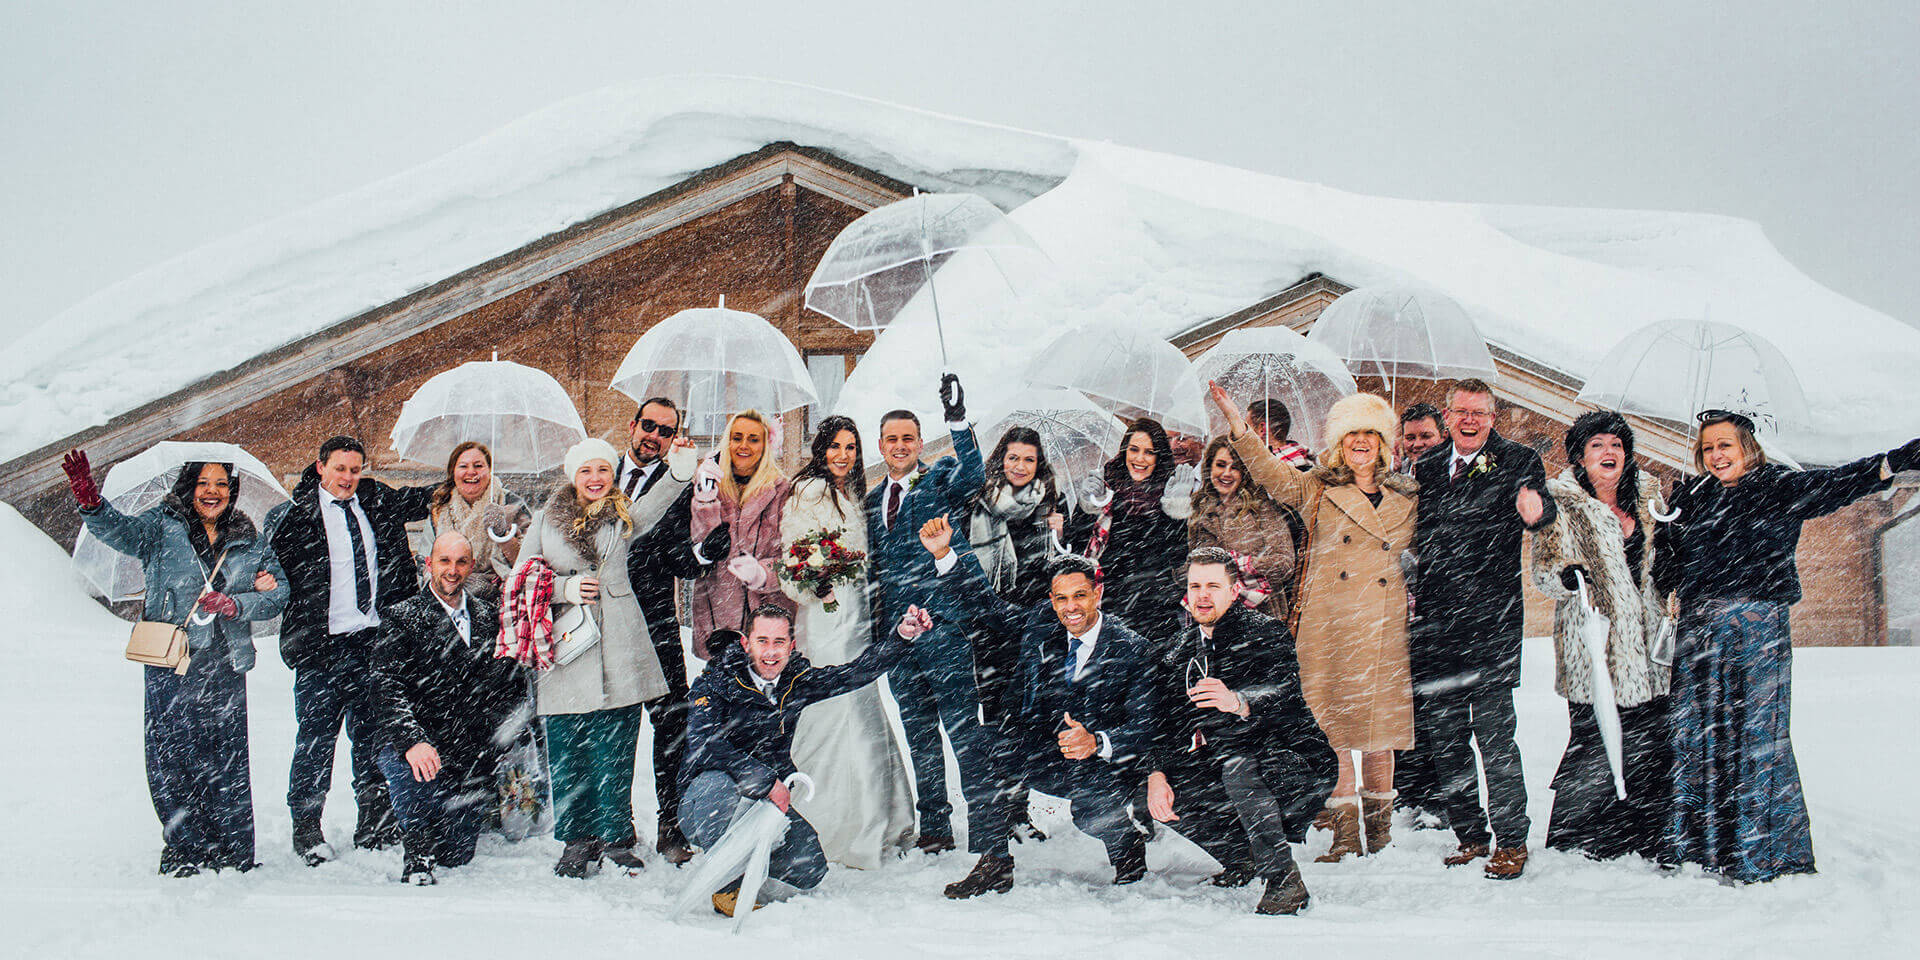 wedding in megeve during snow storm